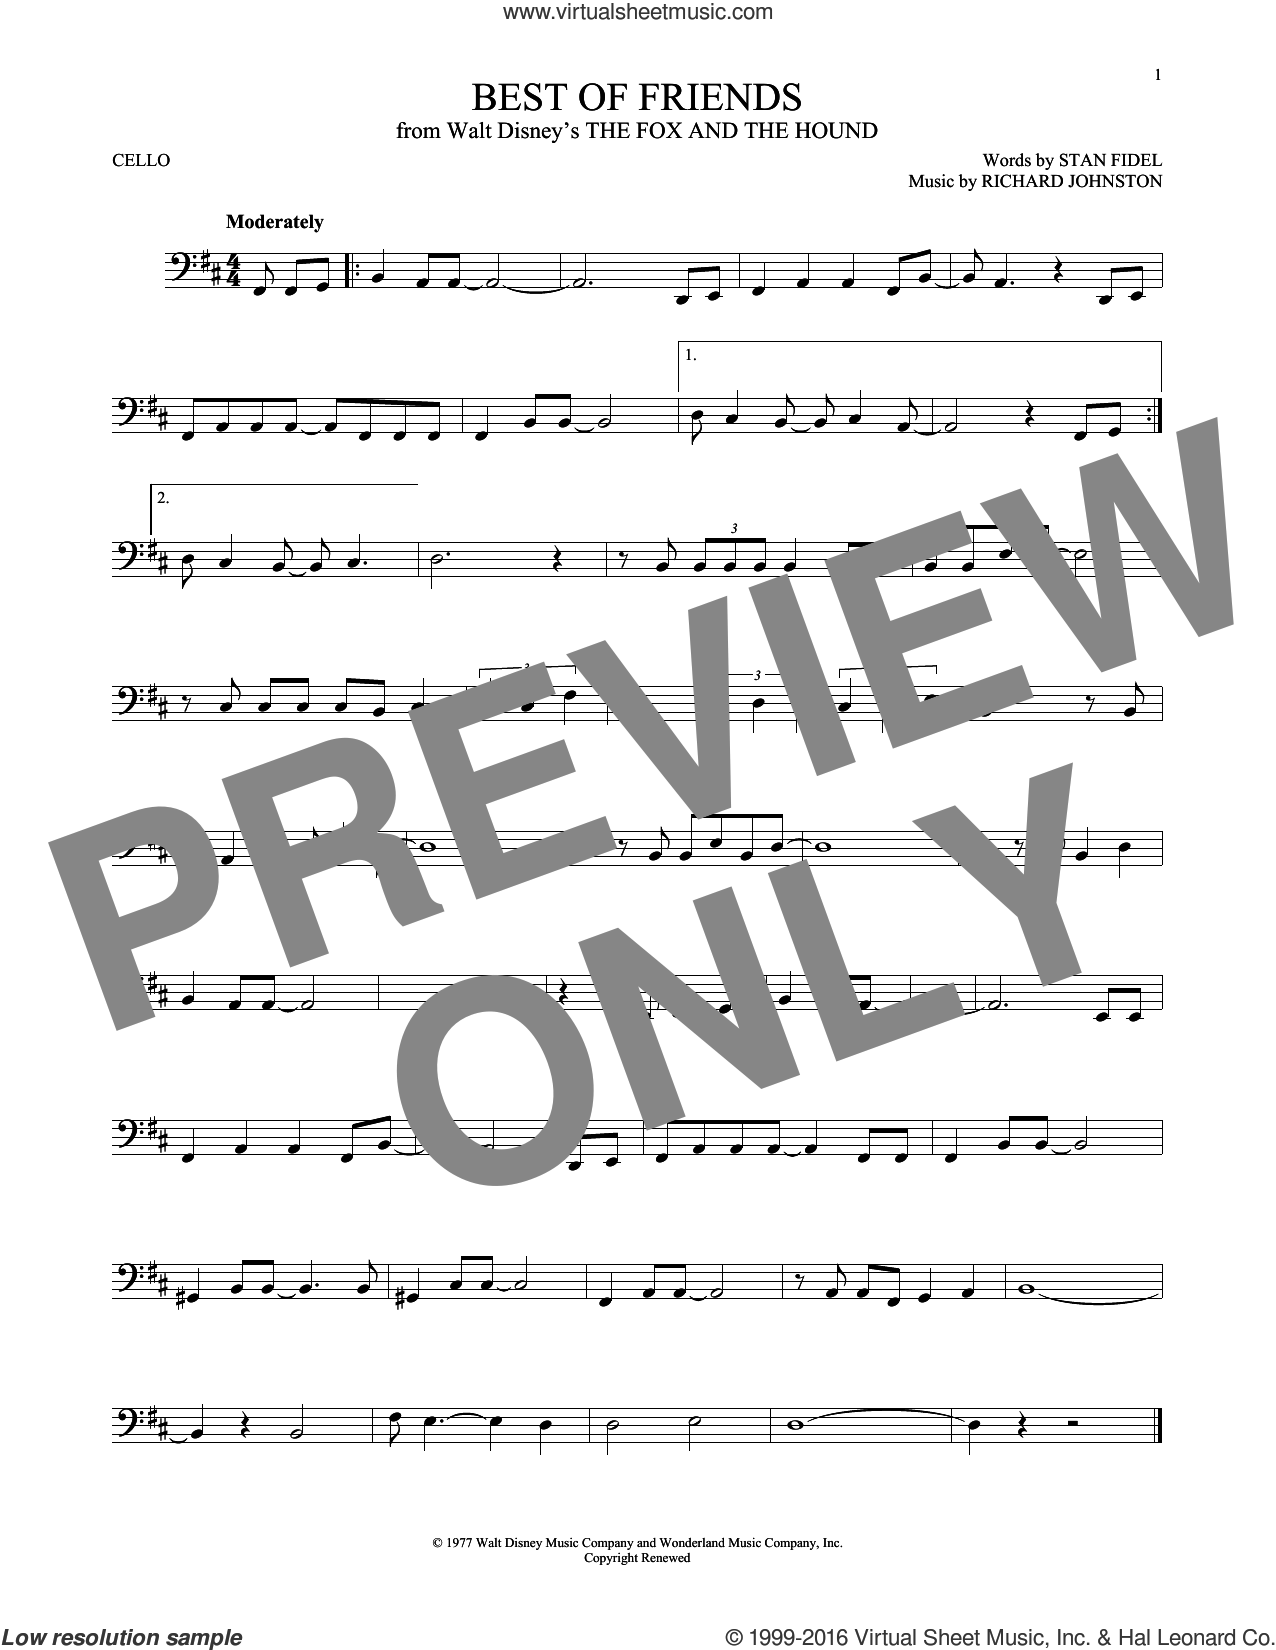 Best Of Friends sheet music for cello solo by Richard Johnston and Stan Fidel, intermediate skill level